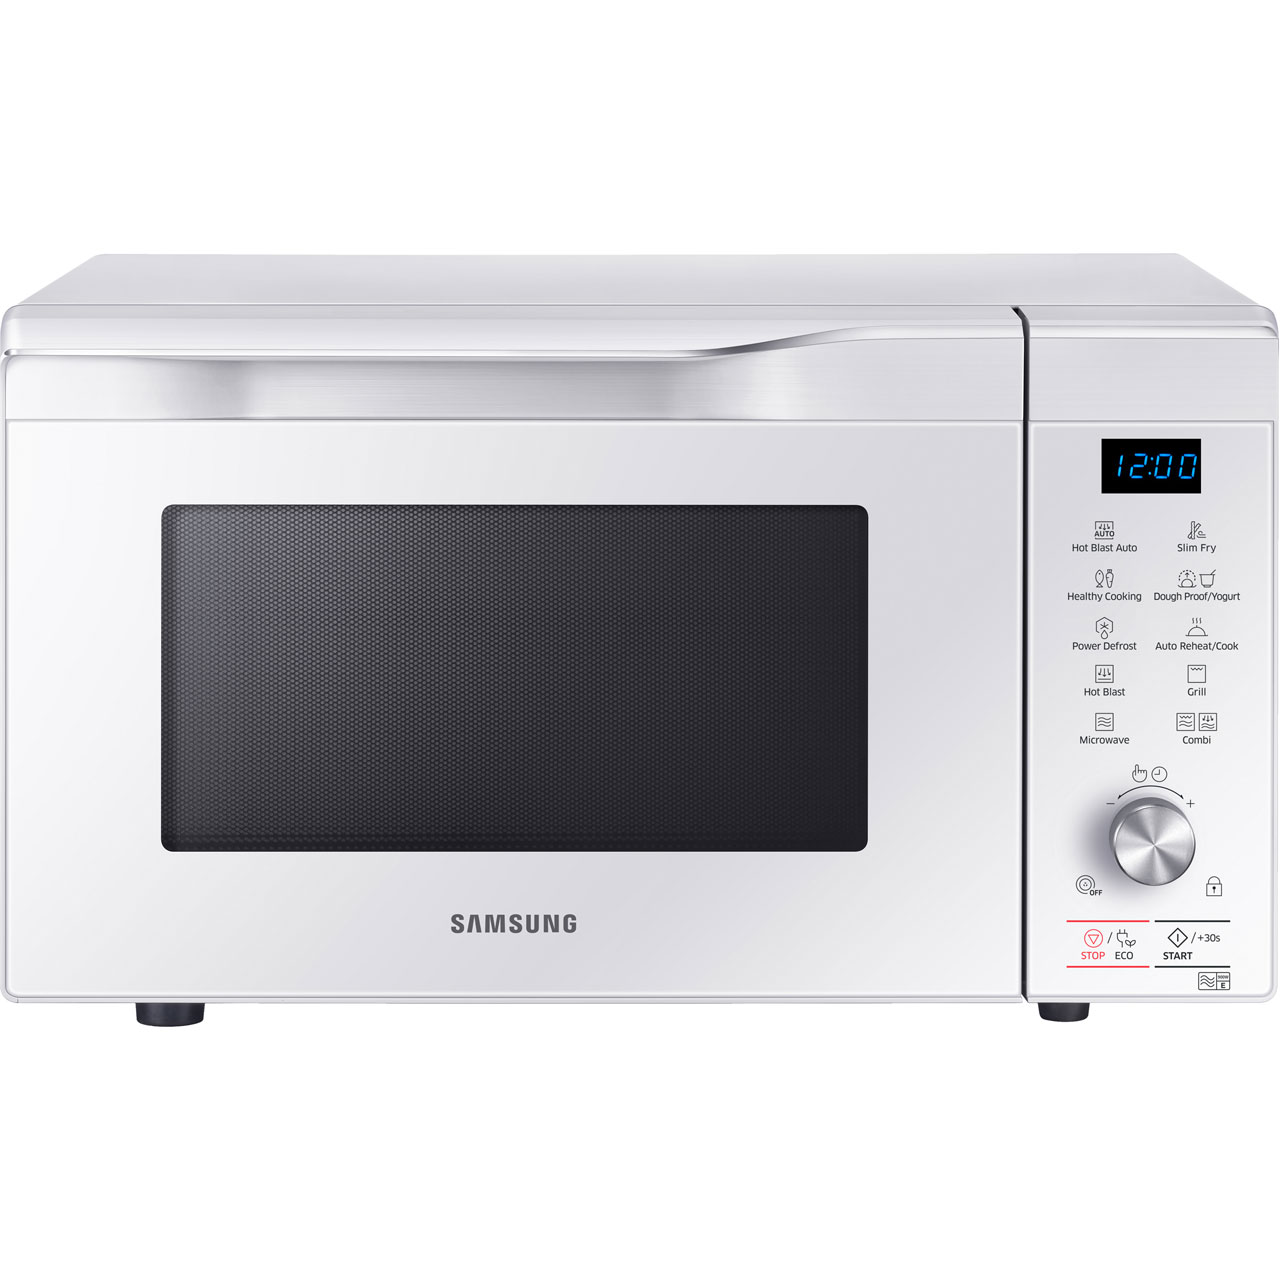 Samsung Tds Microwave Oven: Samsung Microwave Oven